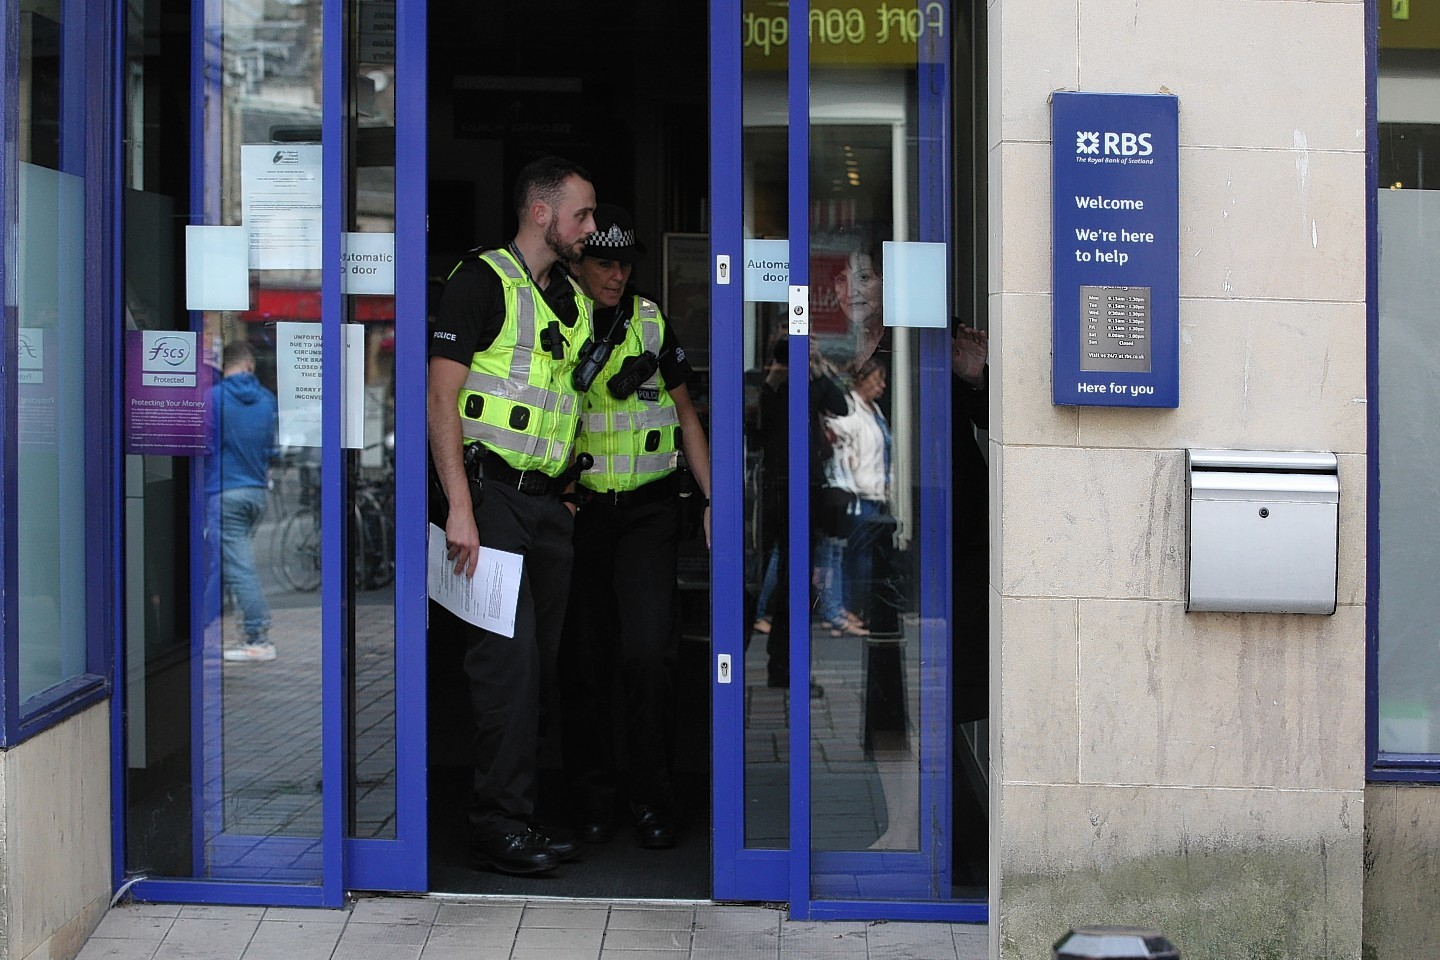 Police at the scene after the bag snatch in RBS, Inverness